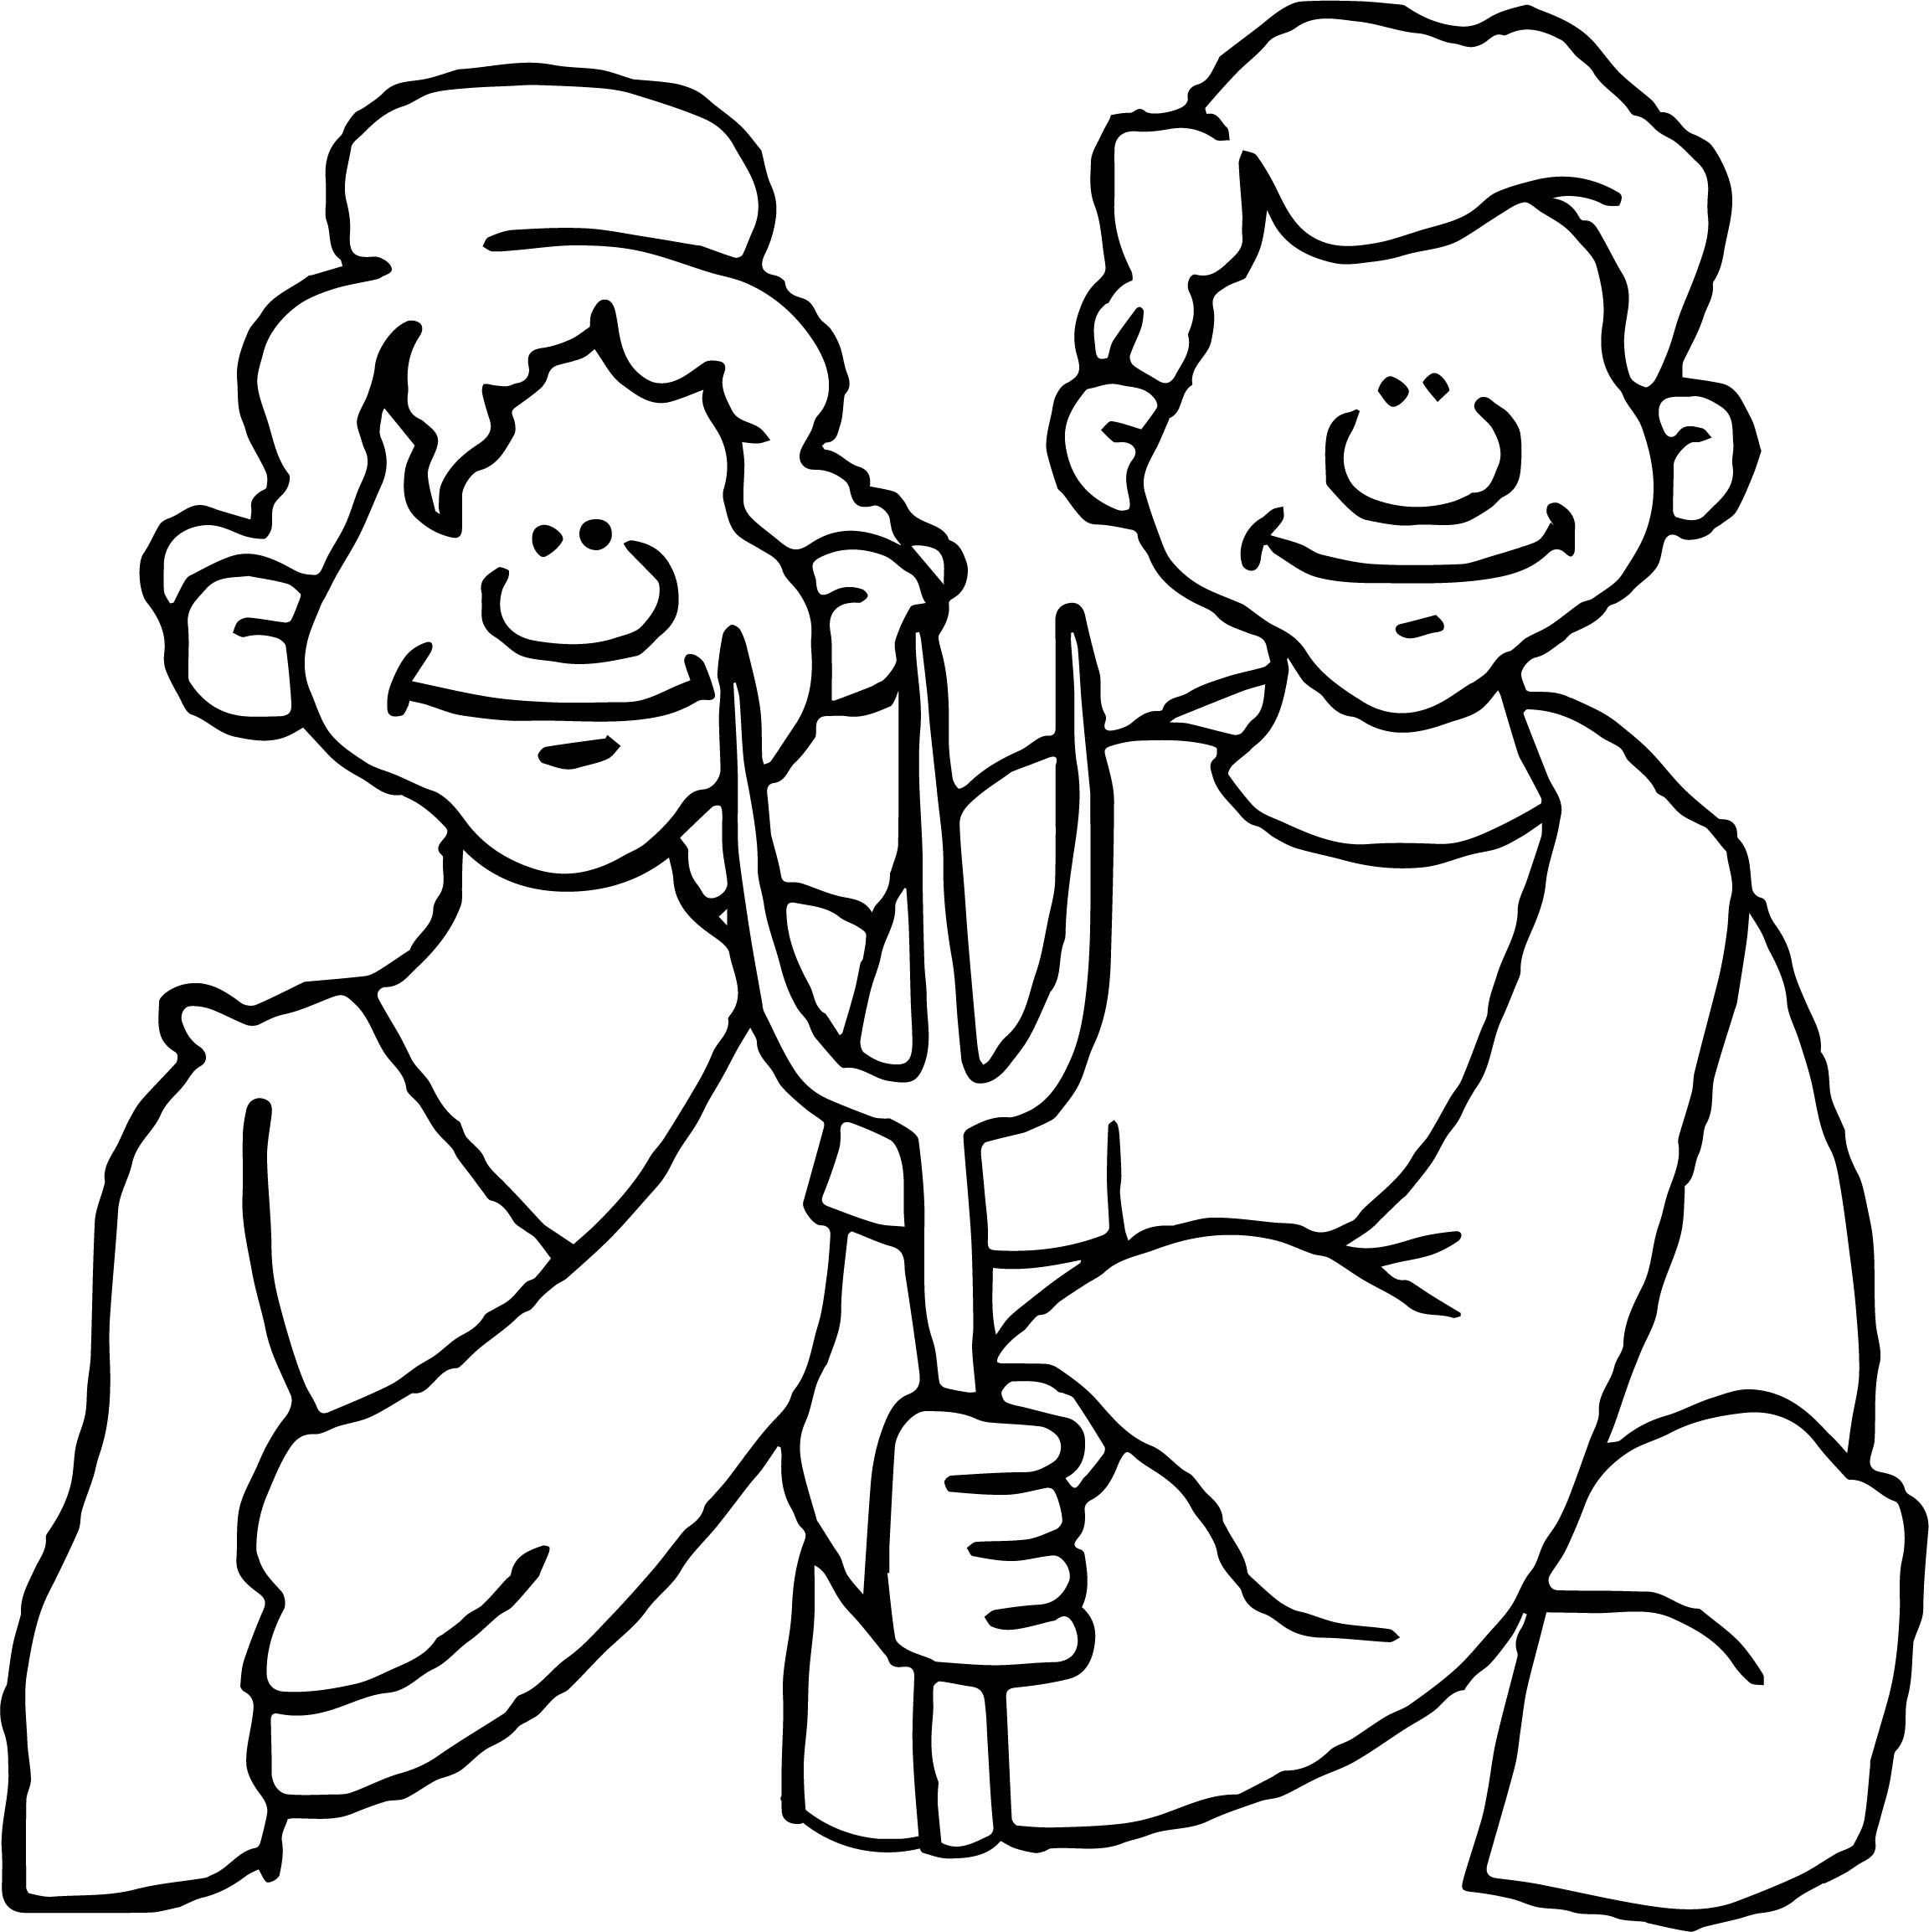 Awesome Ancient Rome Village Family Coloring Page Family Coloring Pages Cartoon Coloring Pages Coloring Pages